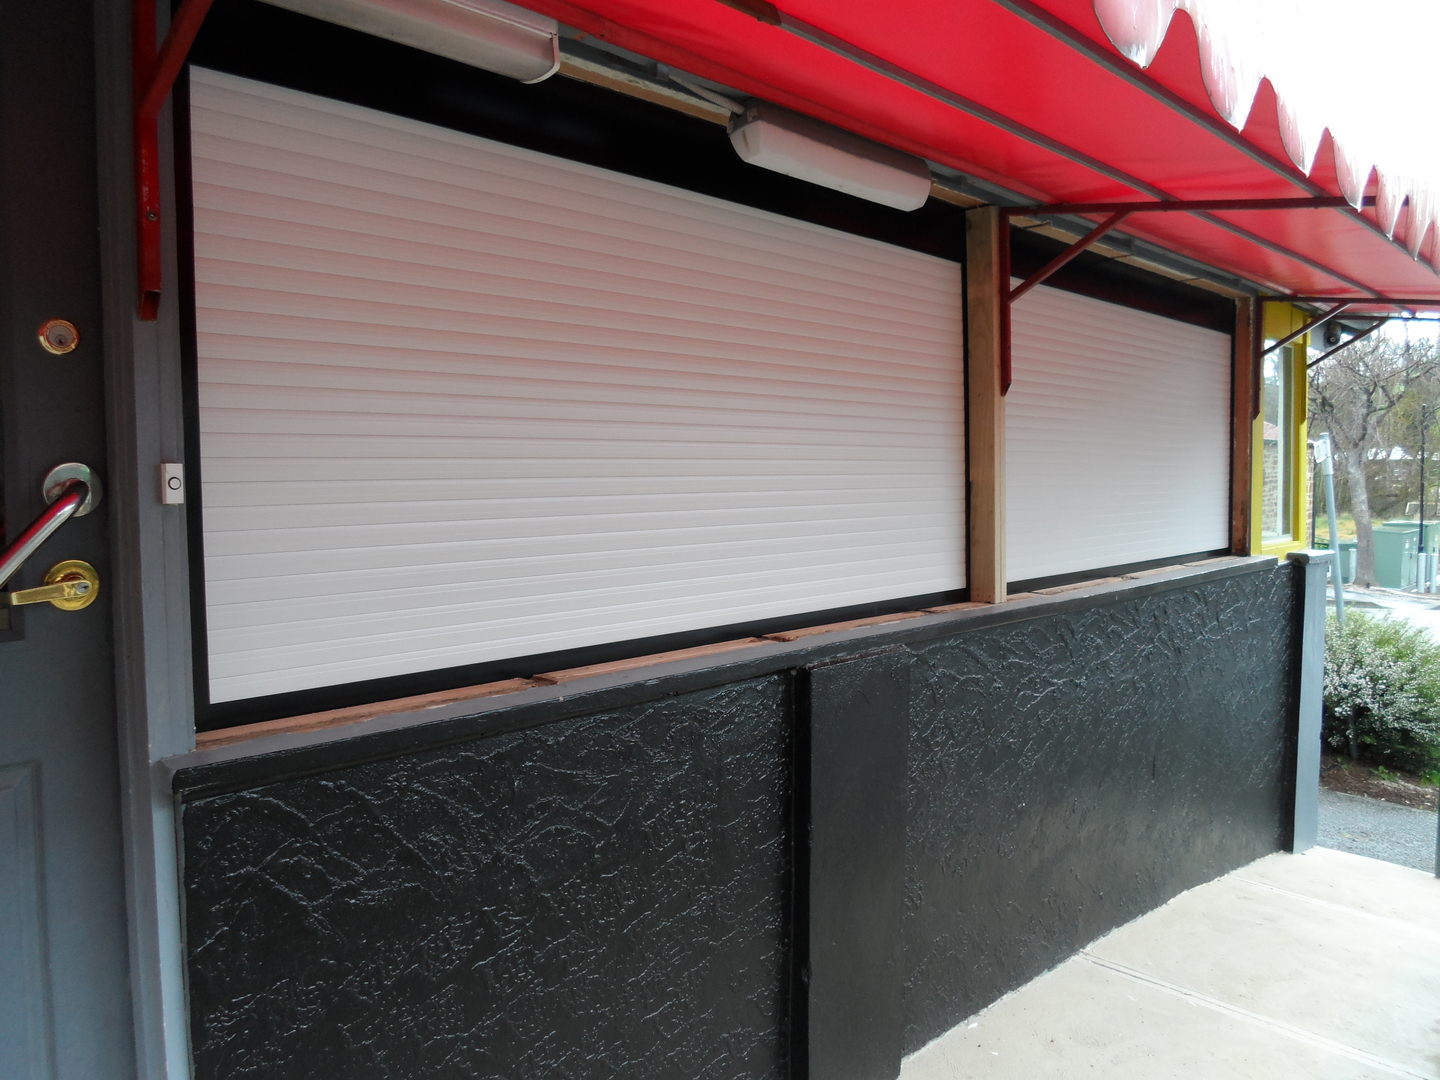 SA Roller Shutters Blinds And Shutters Outdoor Blinds Cheap Blinds